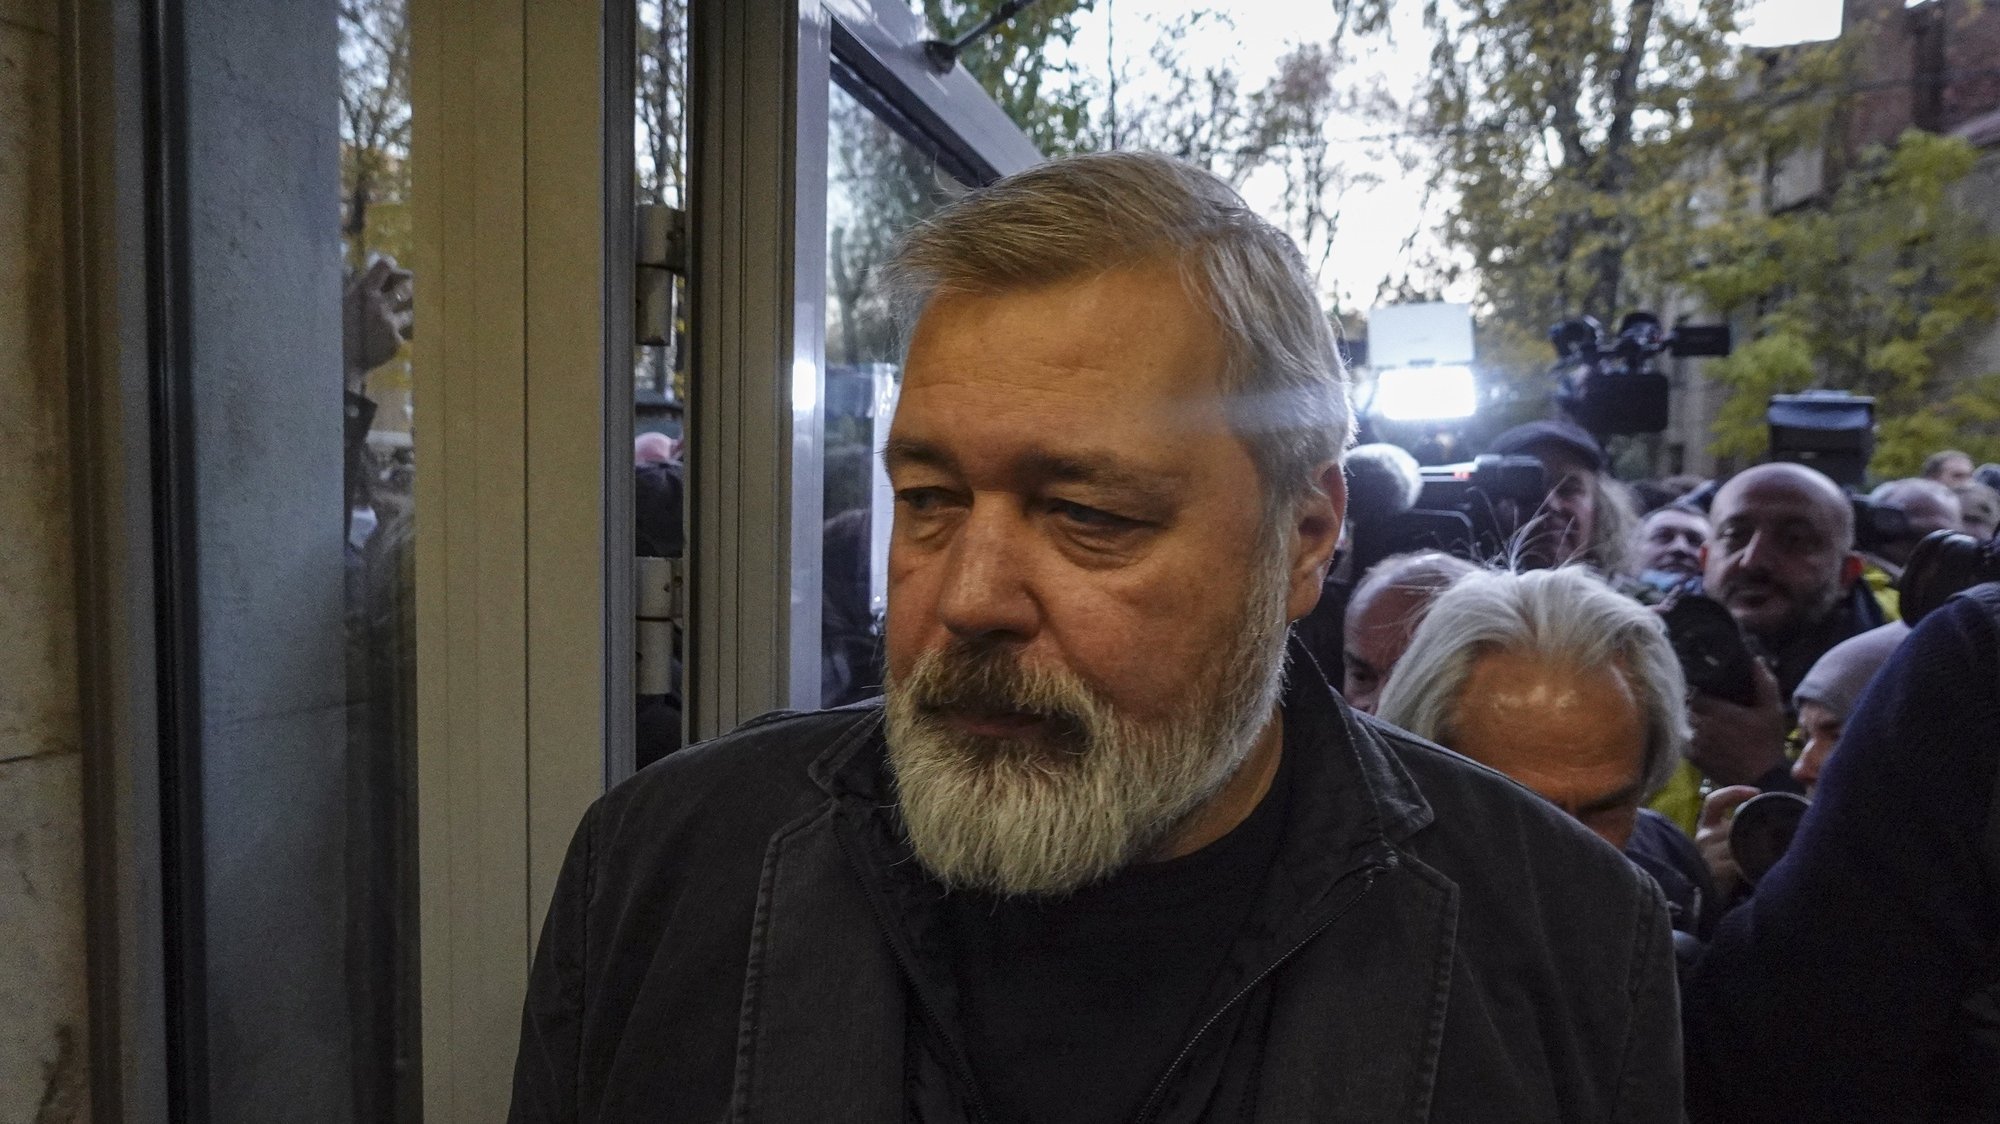 epa09513449 The 2021 Nobel Peace Prize laureate, the editor-in-chief of 'Novaya Gazeta' newspaper Dmitry Muratov enters the head office of the 'Novaya Gazeta' in Moscow, Russia, 08 October 2021. Muratov along with Maria Ressa, CEO and Executive Editor of online news site Rappler, were announced winners of the 2021 Nobel Peace Prize by the Nobel Committee in Oslo on 08 October 2021.  EPA/MAXIM SHIPENKOV